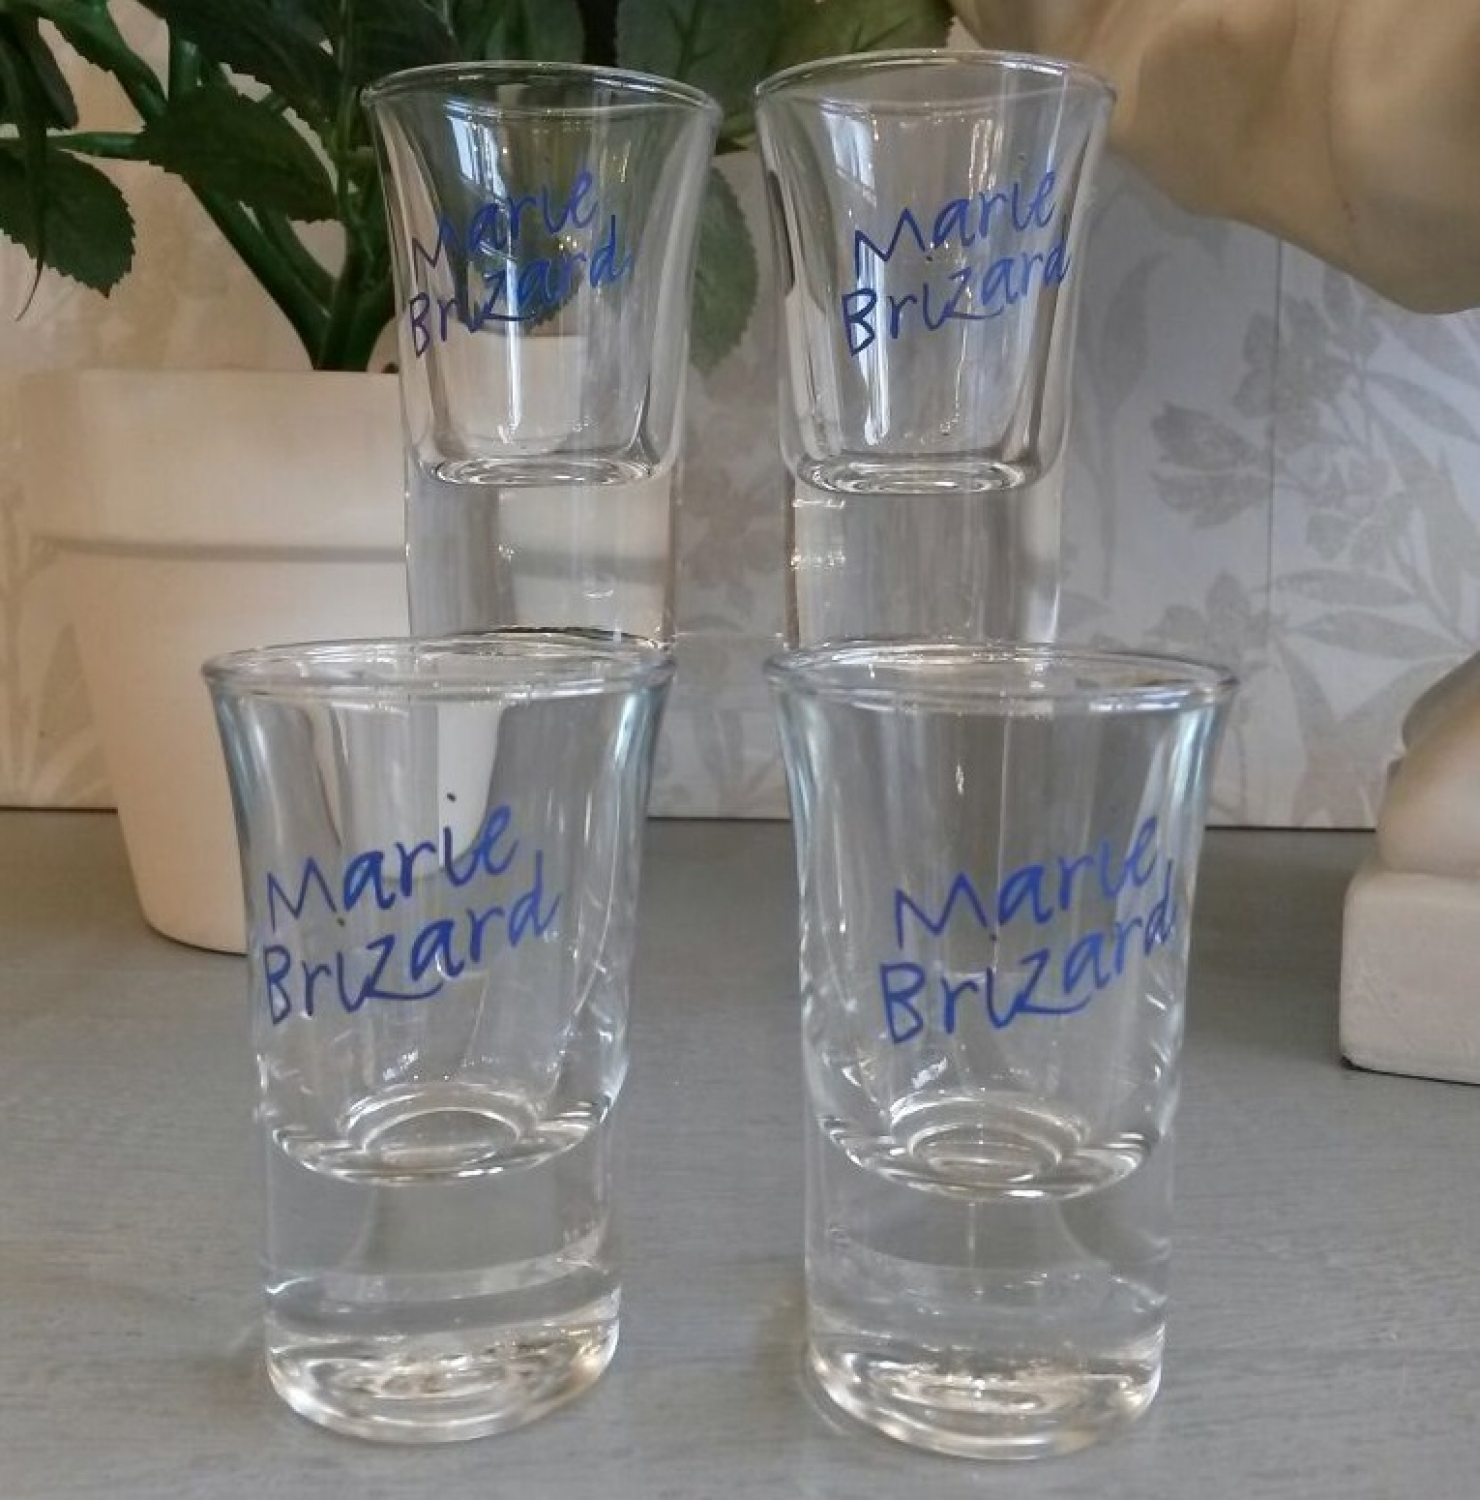 Set of 4 Marie Brizard shot glasses